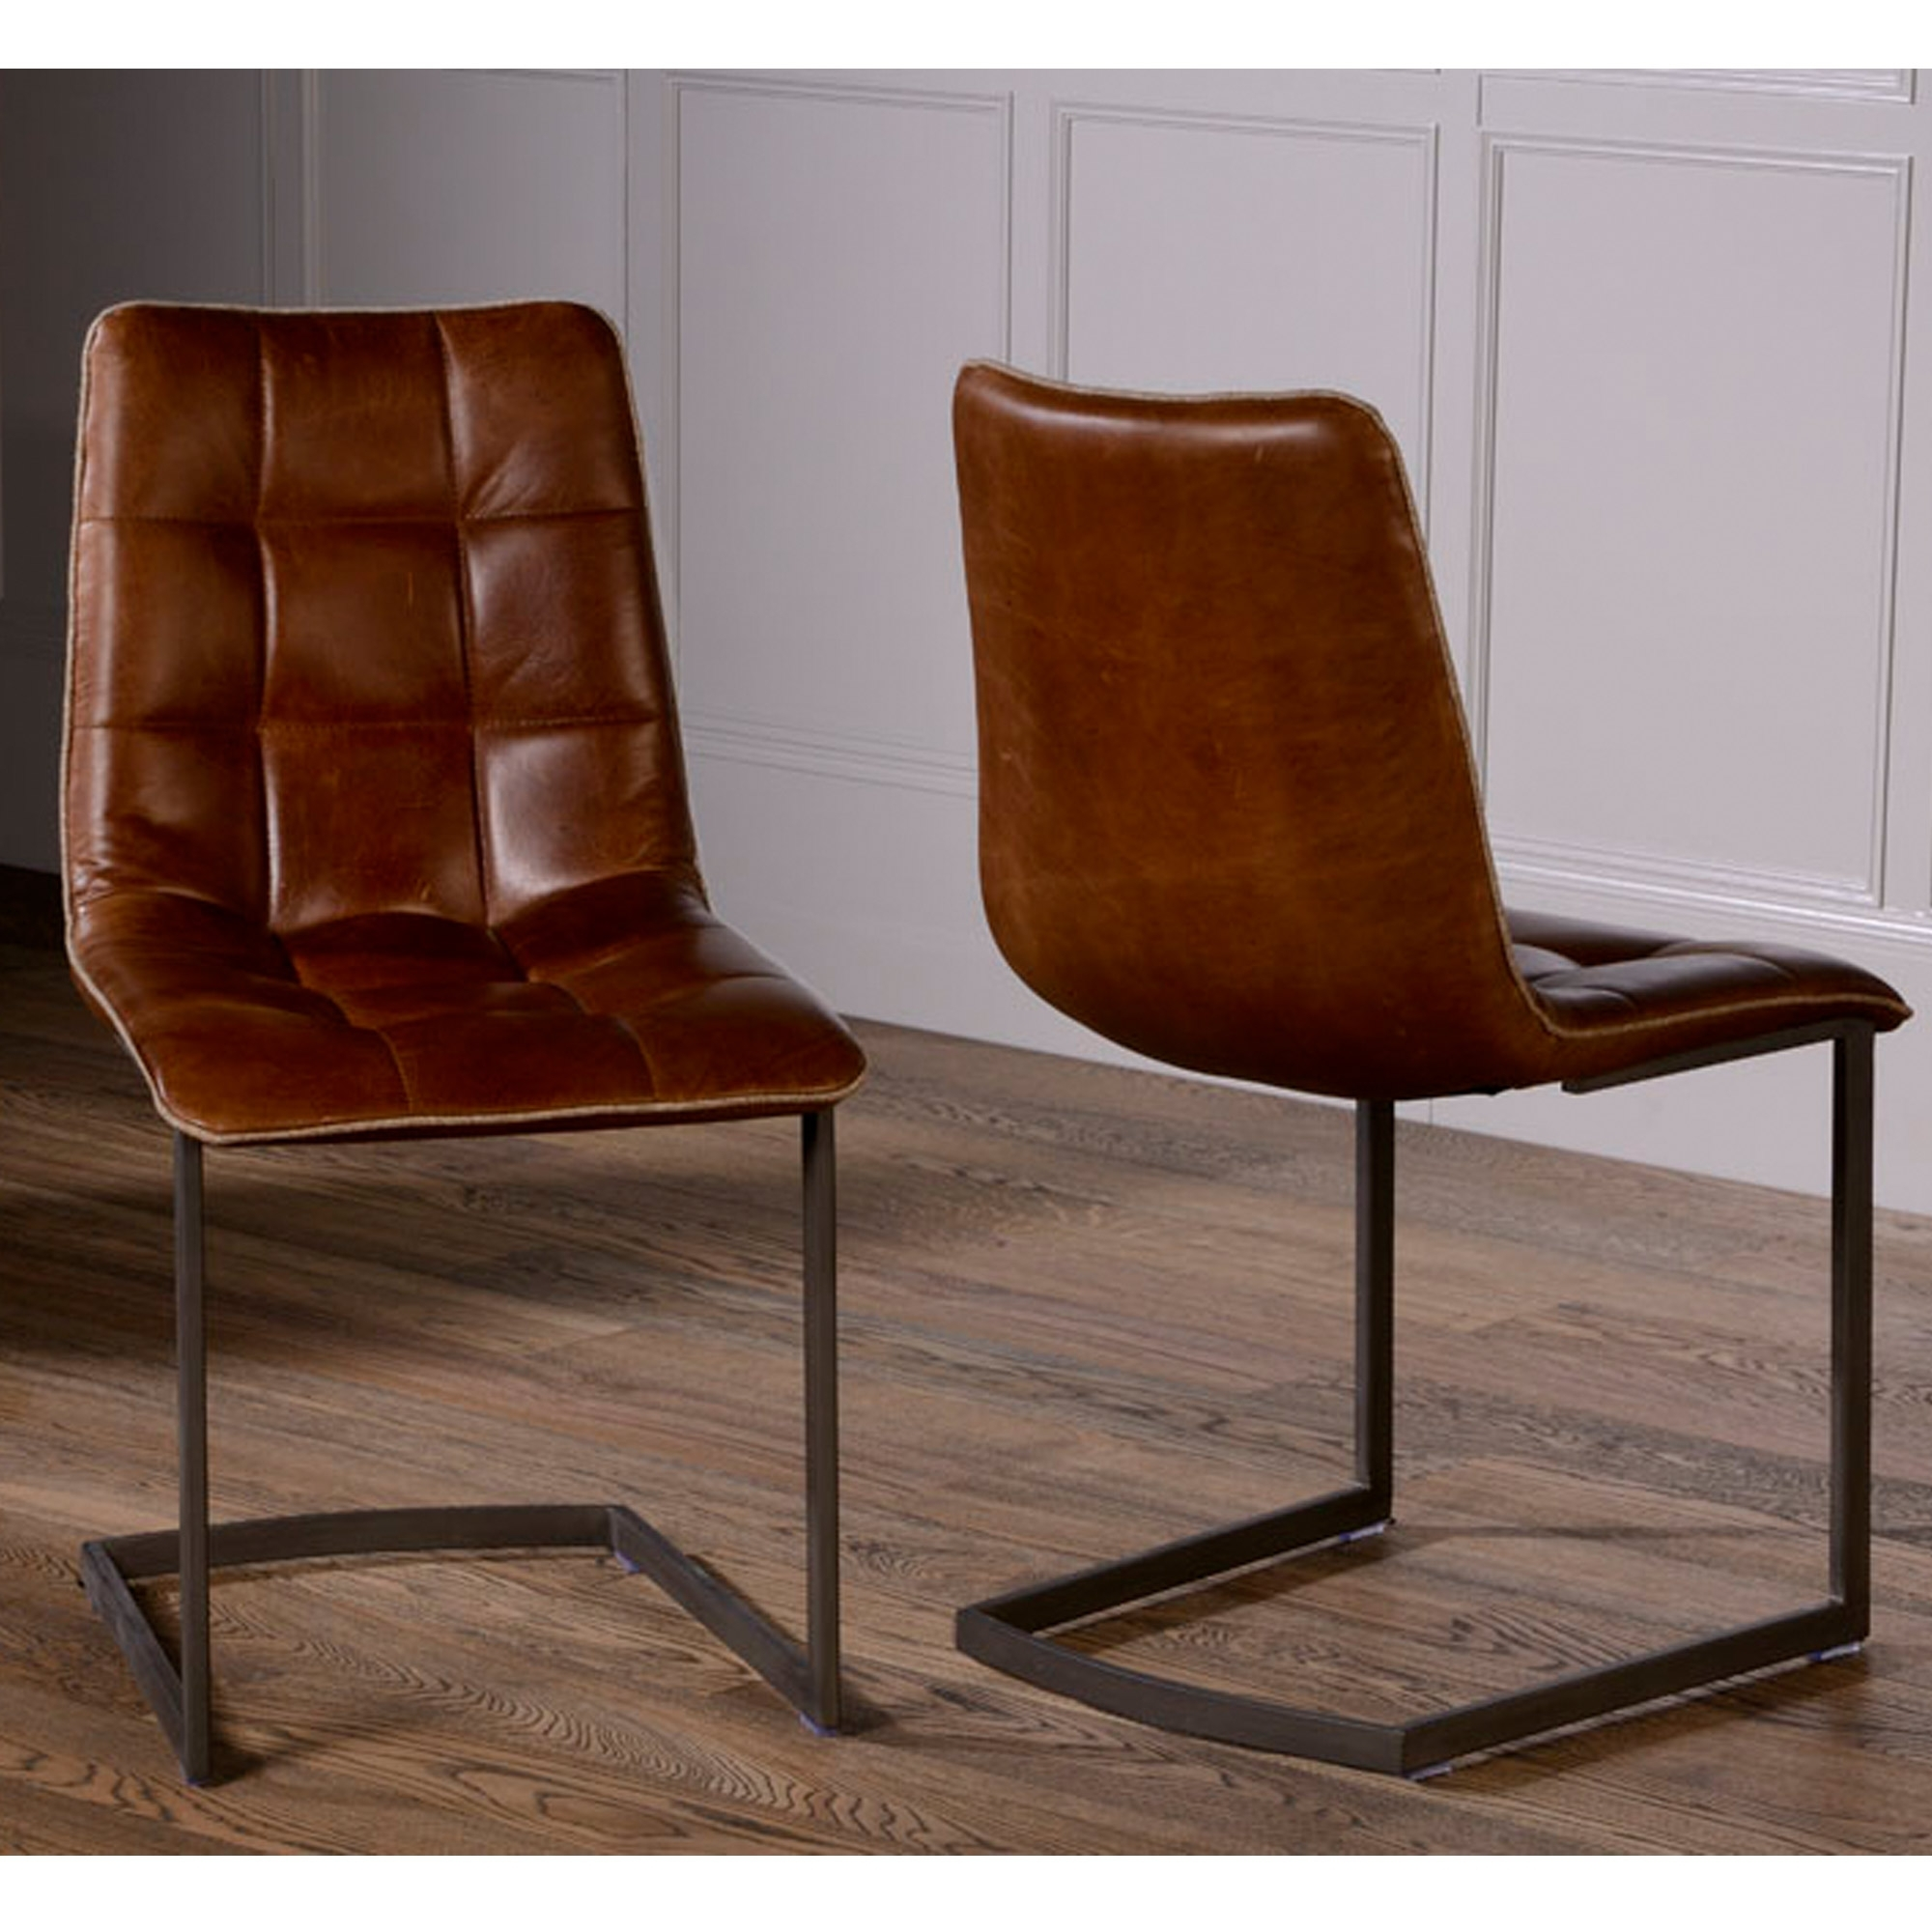 Brown Leather Dining Chairs Pertaining To Most Up To Date Related Keywords Suggestions For Leather Dining Chairs (Gallery 18 of 25)